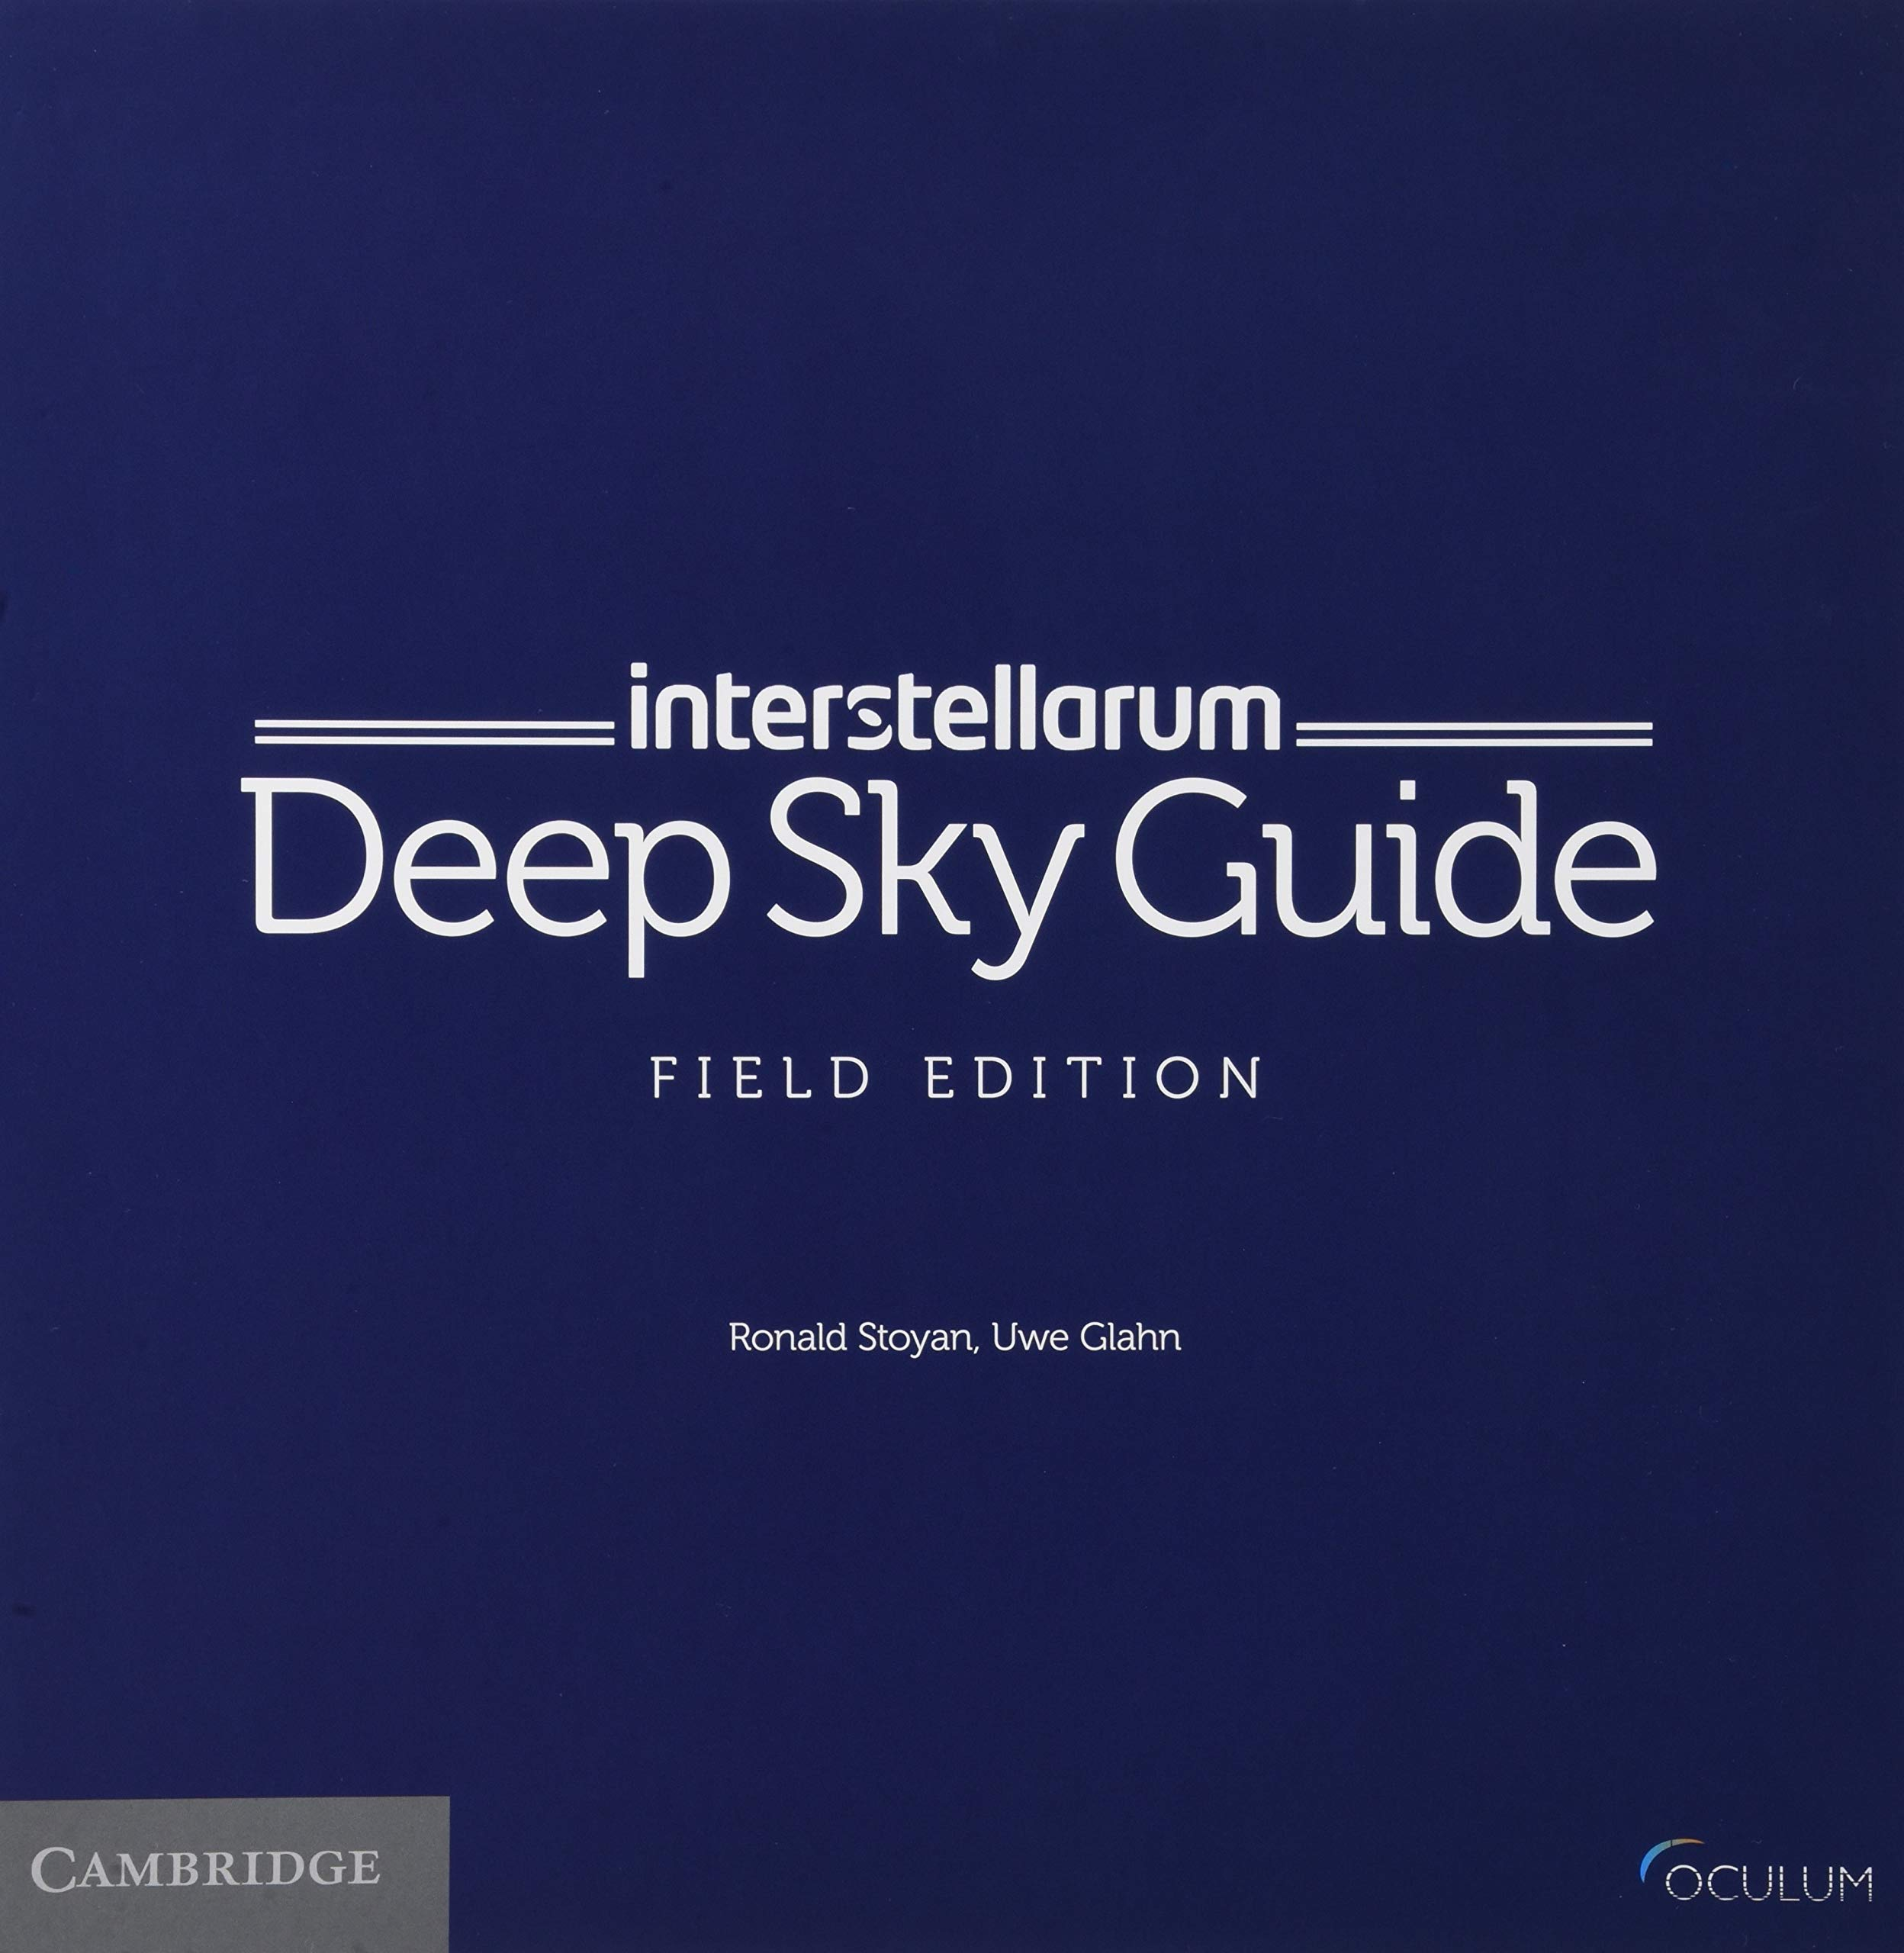 Download Ebook Interstellarum Deep Sky Guide Field Edition